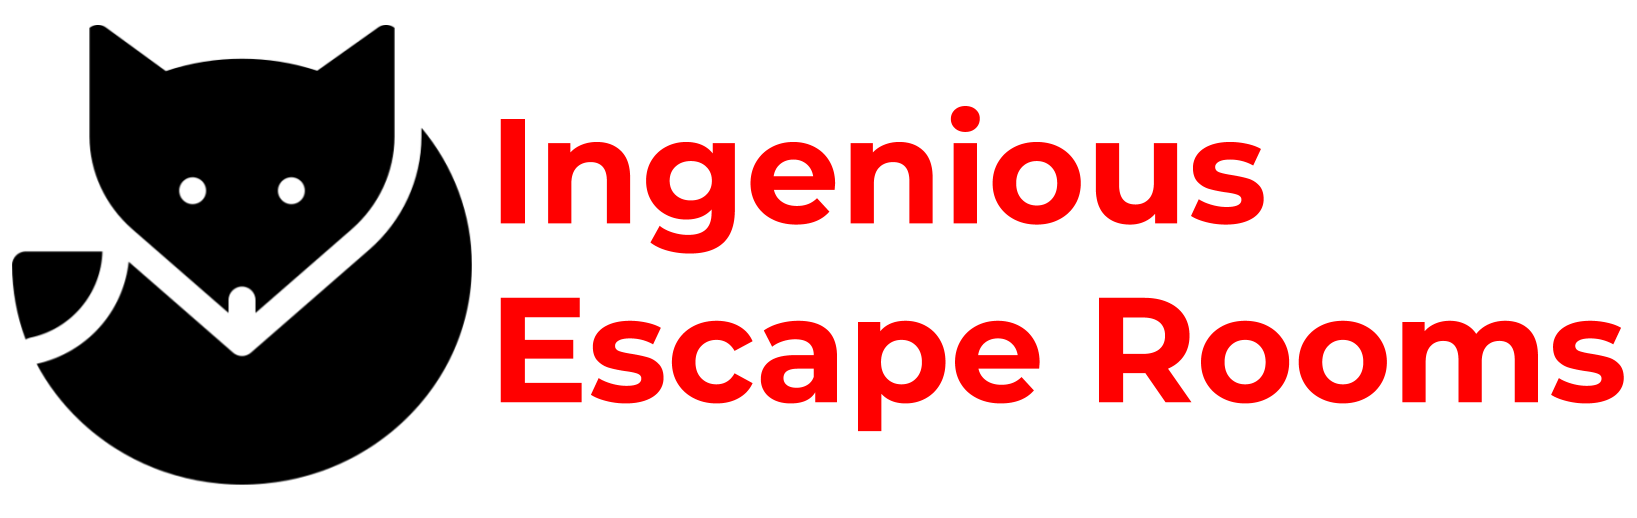 Ingenious Escape Rooms |   New (2)